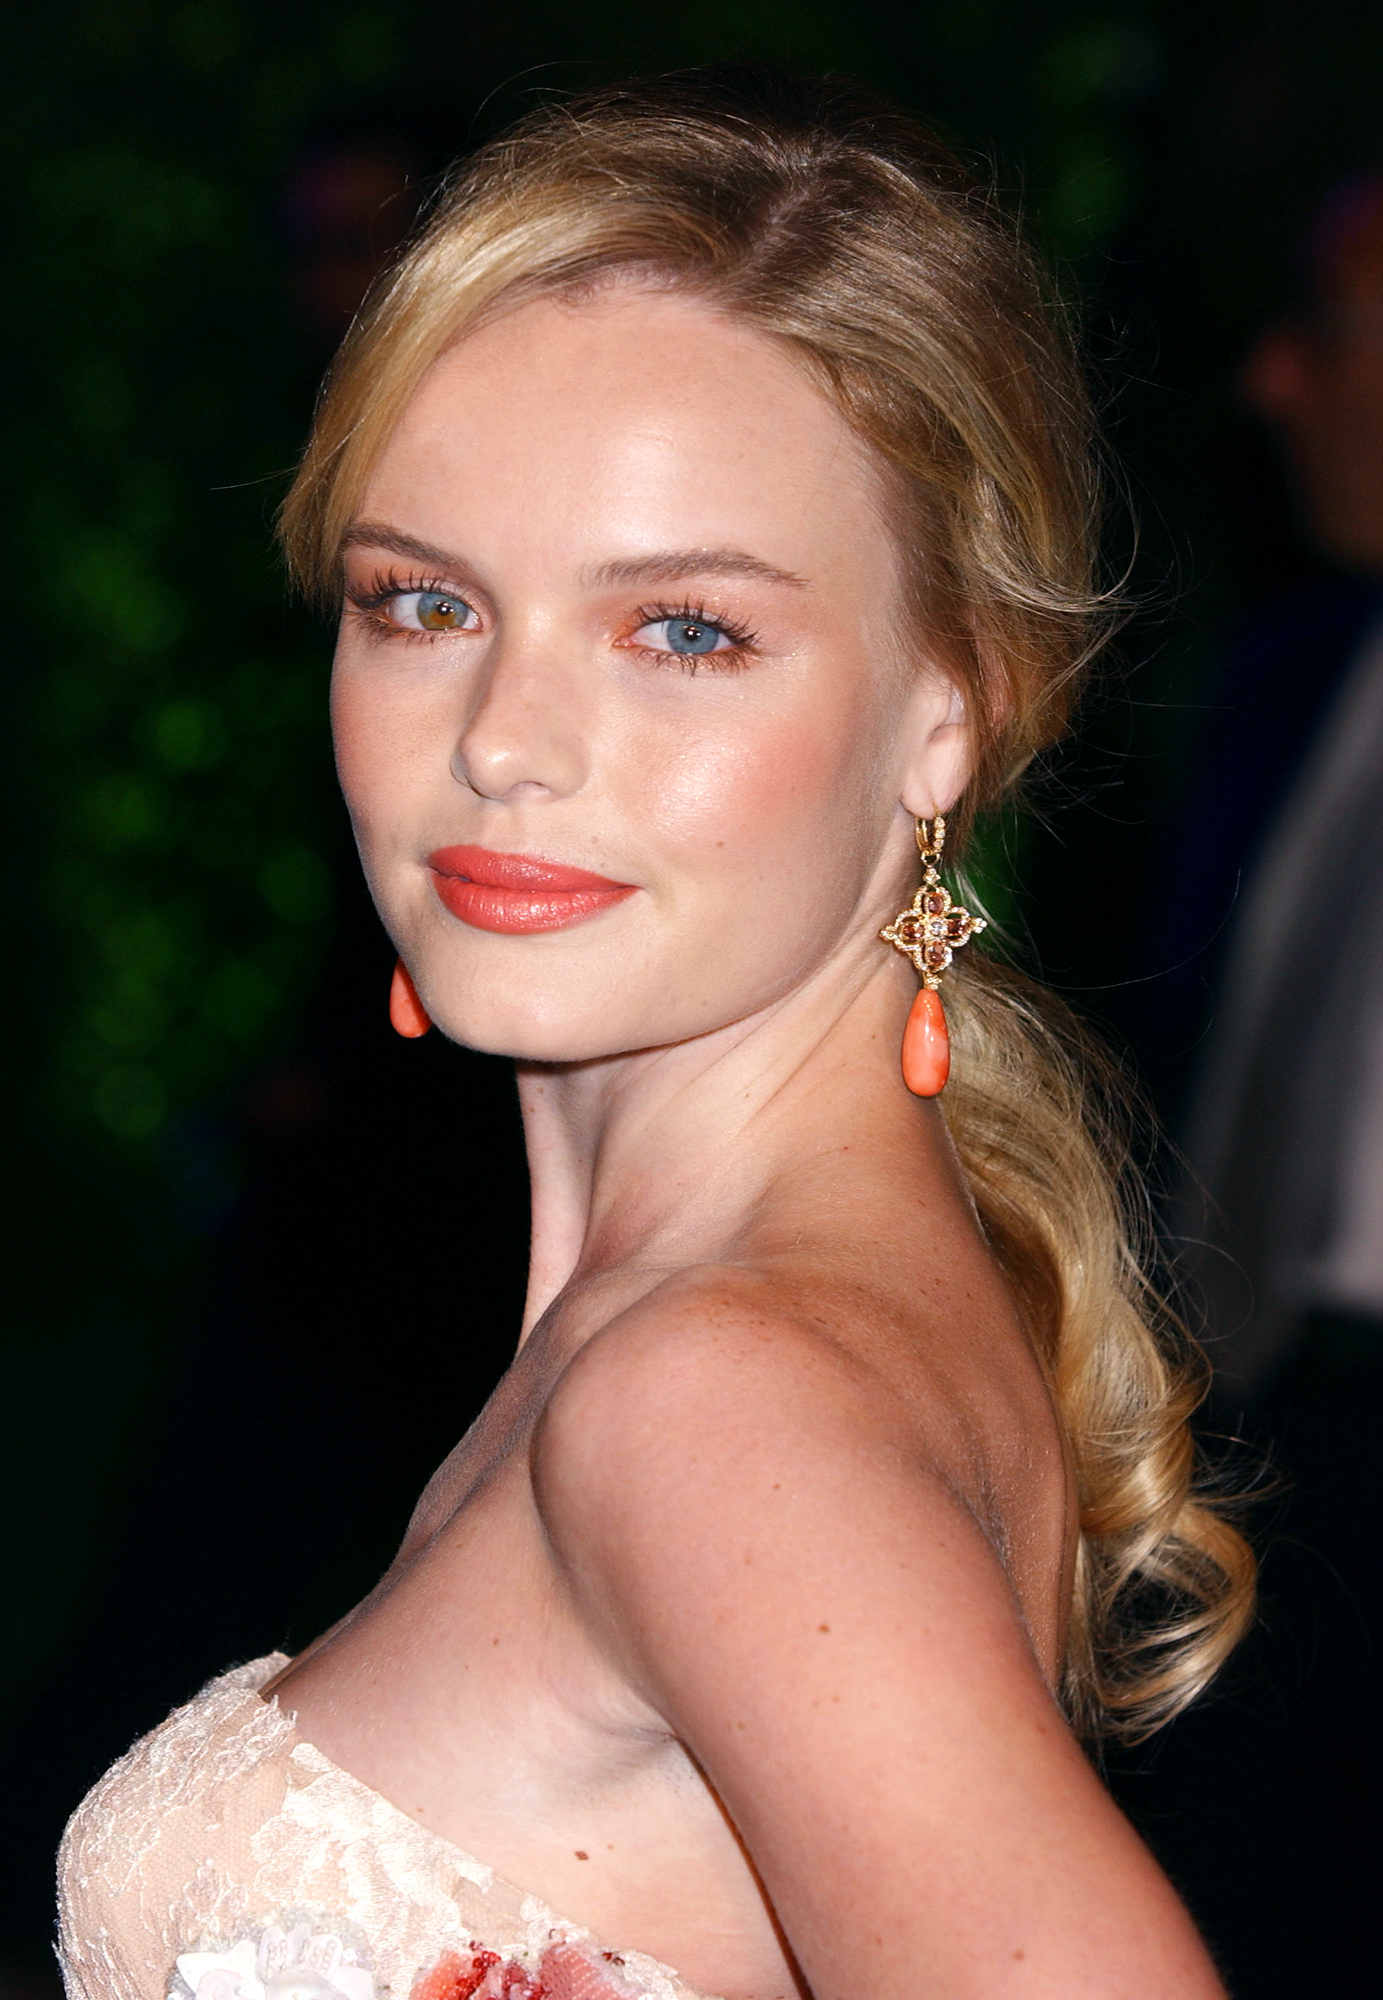 See Birthday Girl Kate Bosworth's Best Beauty Moments - The fashionista made the case for matching your eyeshadow, lipstick and blush to your earrings and dress with her monochrome coral look at the 2005 Vanity Fair Oscar Party.